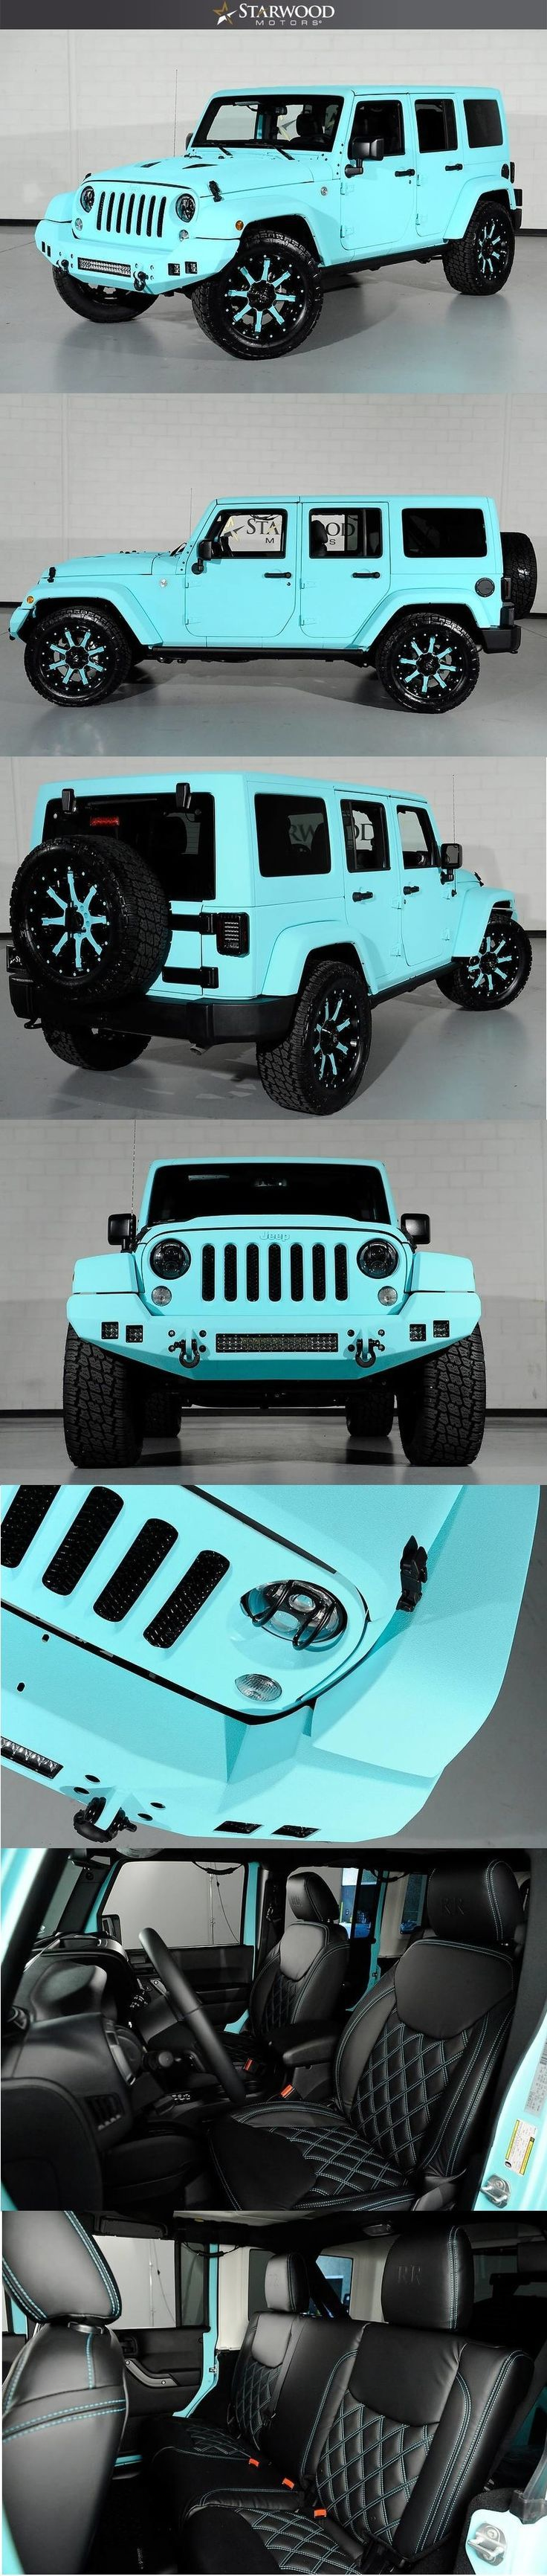 best 25 tiffany blue car ideas on pinterest blue cars dream cars and black jeep wrangler. Black Bedroom Furniture Sets. Home Design Ideas